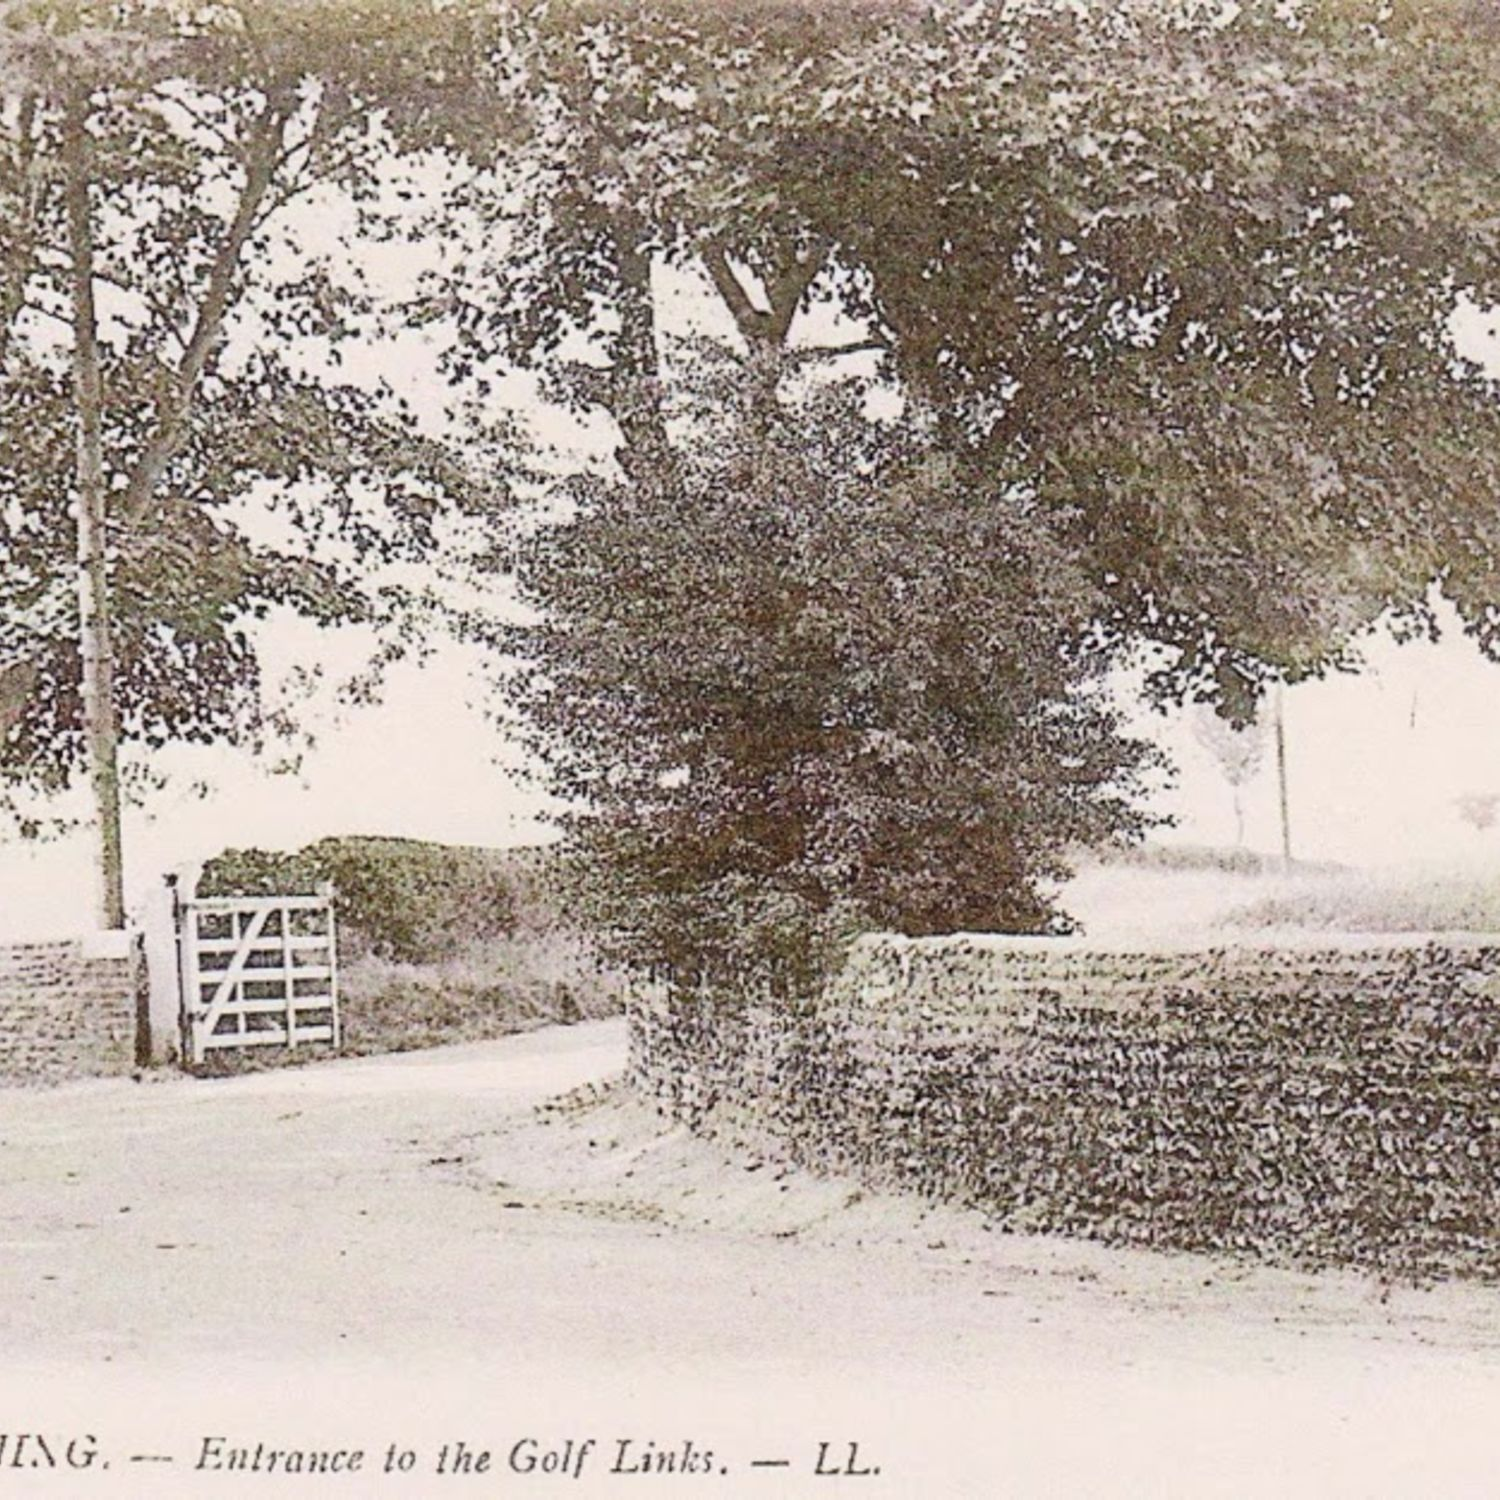 The entrance to Worthing Golf Club, in this postcard.